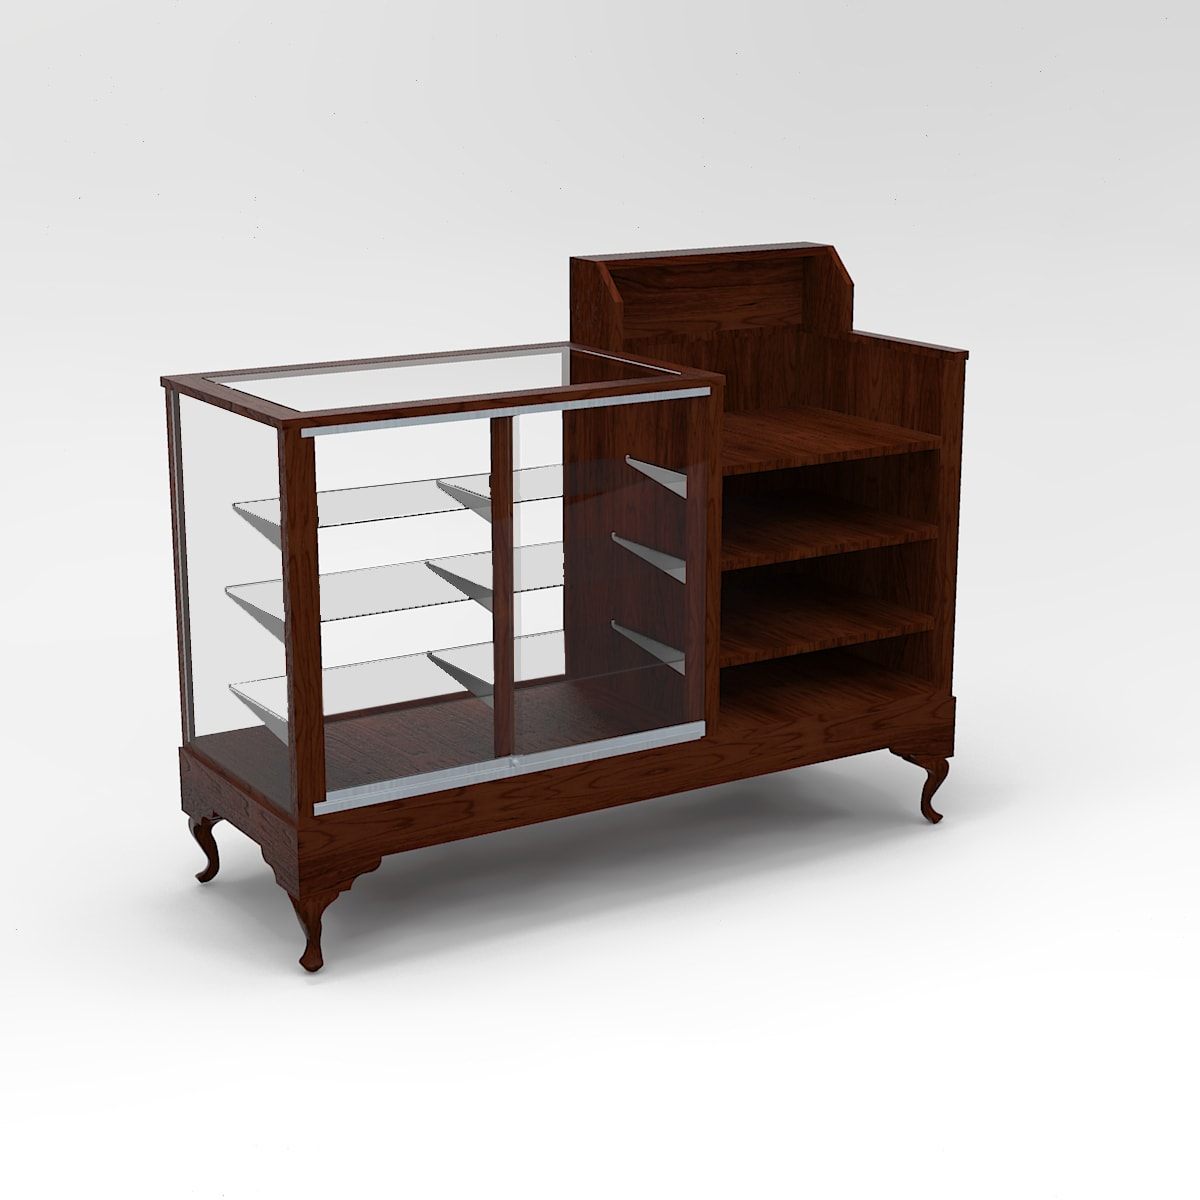 60 inch Extra Vision Queen Anne Leg Cash Wrap Display Case To Purchase